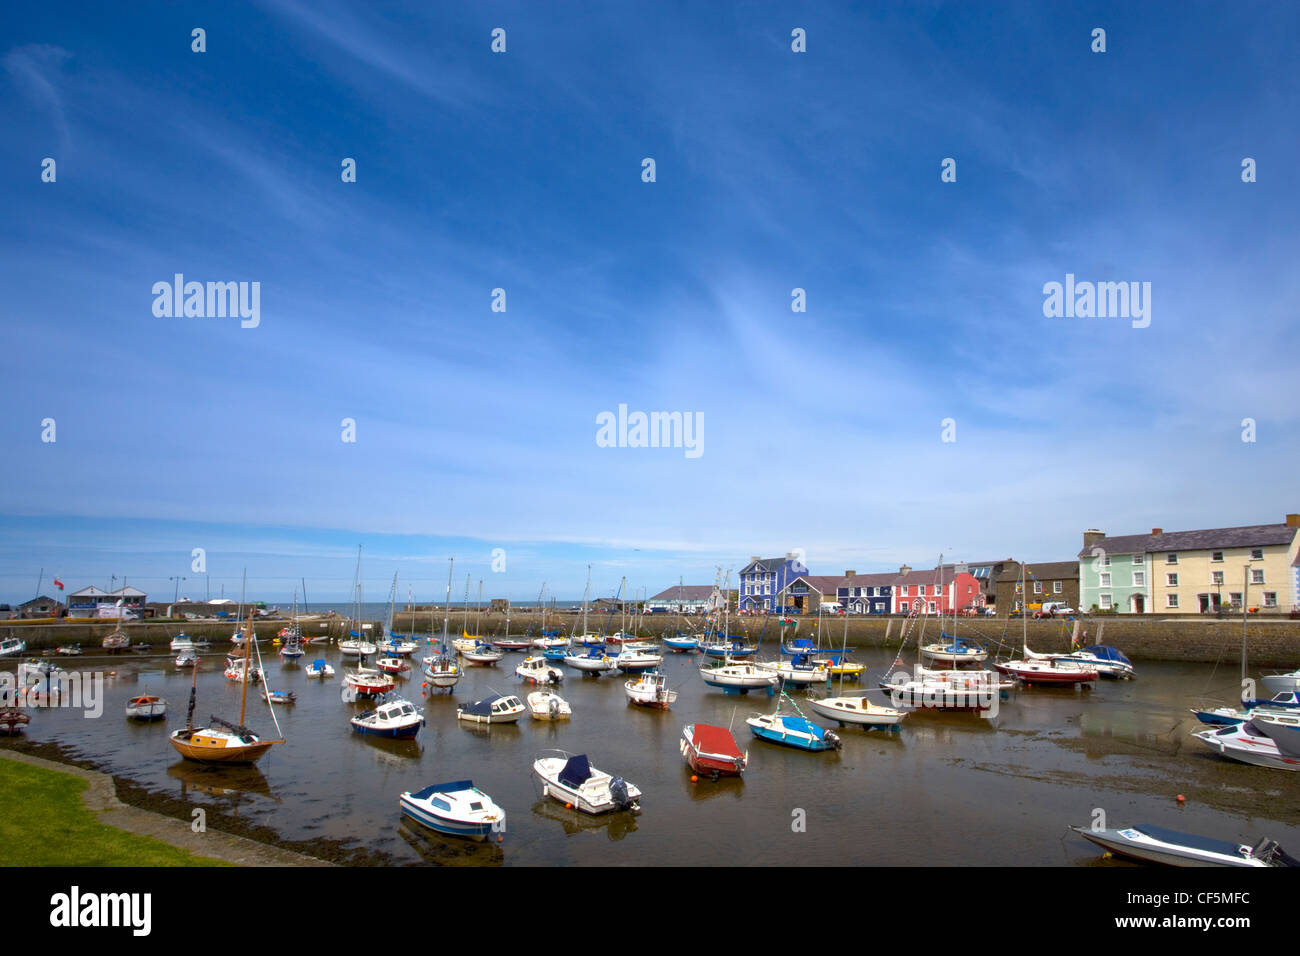 Small boats in the harbour at Aberaeron. It is one of Wales' very first planned towns, the idea of establishing - Stock Image